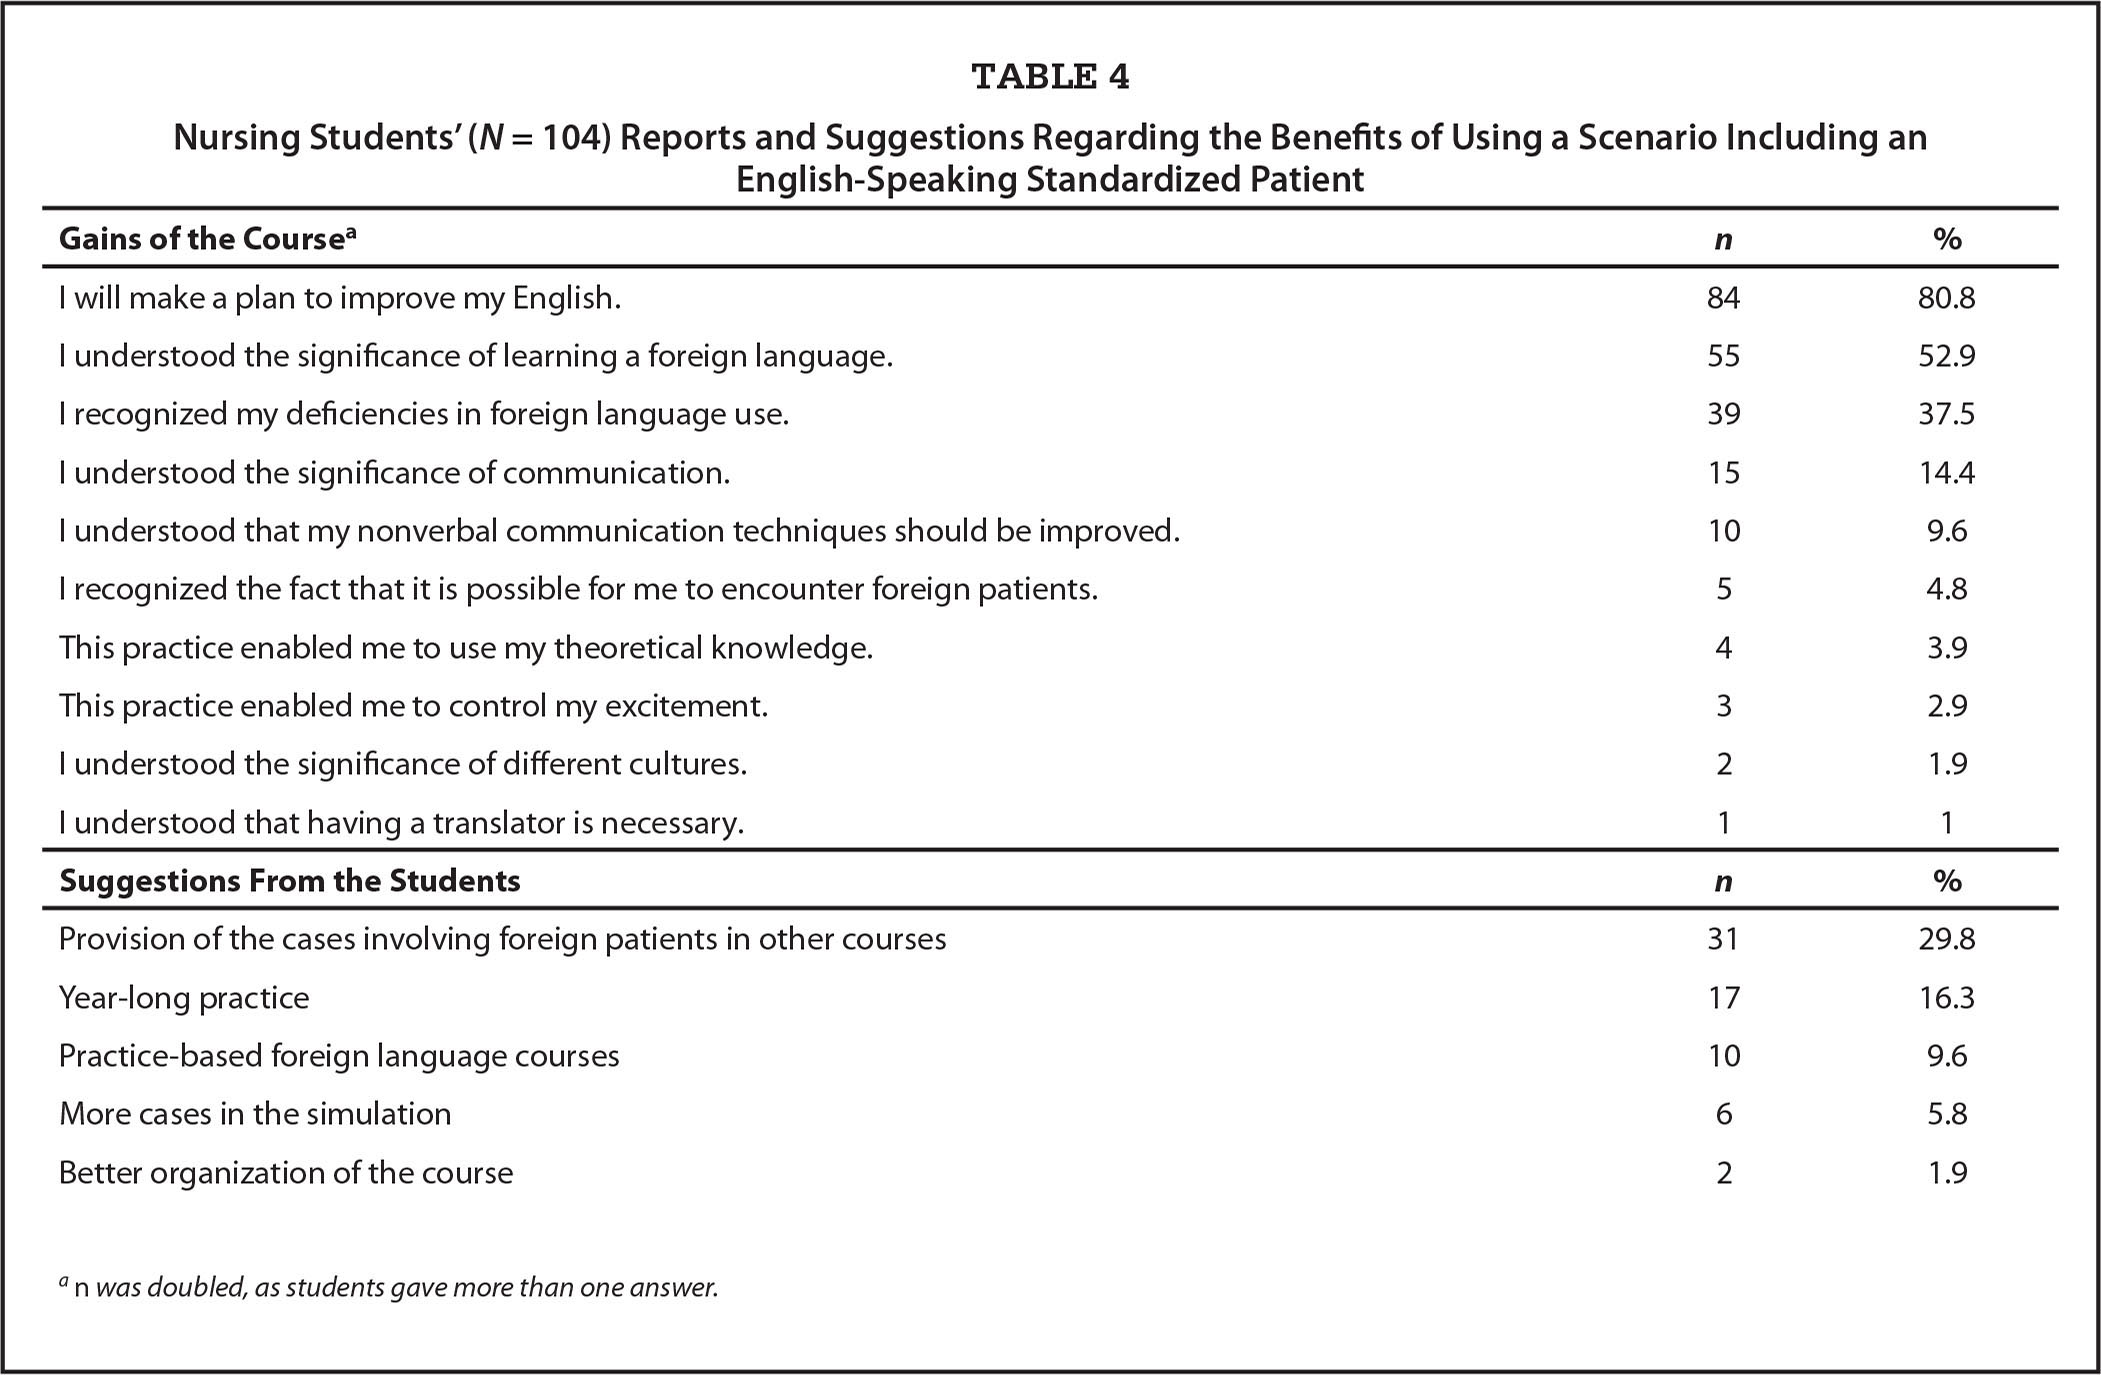 Nursing Students' (N = 104) Reports and Suggestions Regarding the Benefits of Using a Scenario Including an English-Speaking Standardized Patient